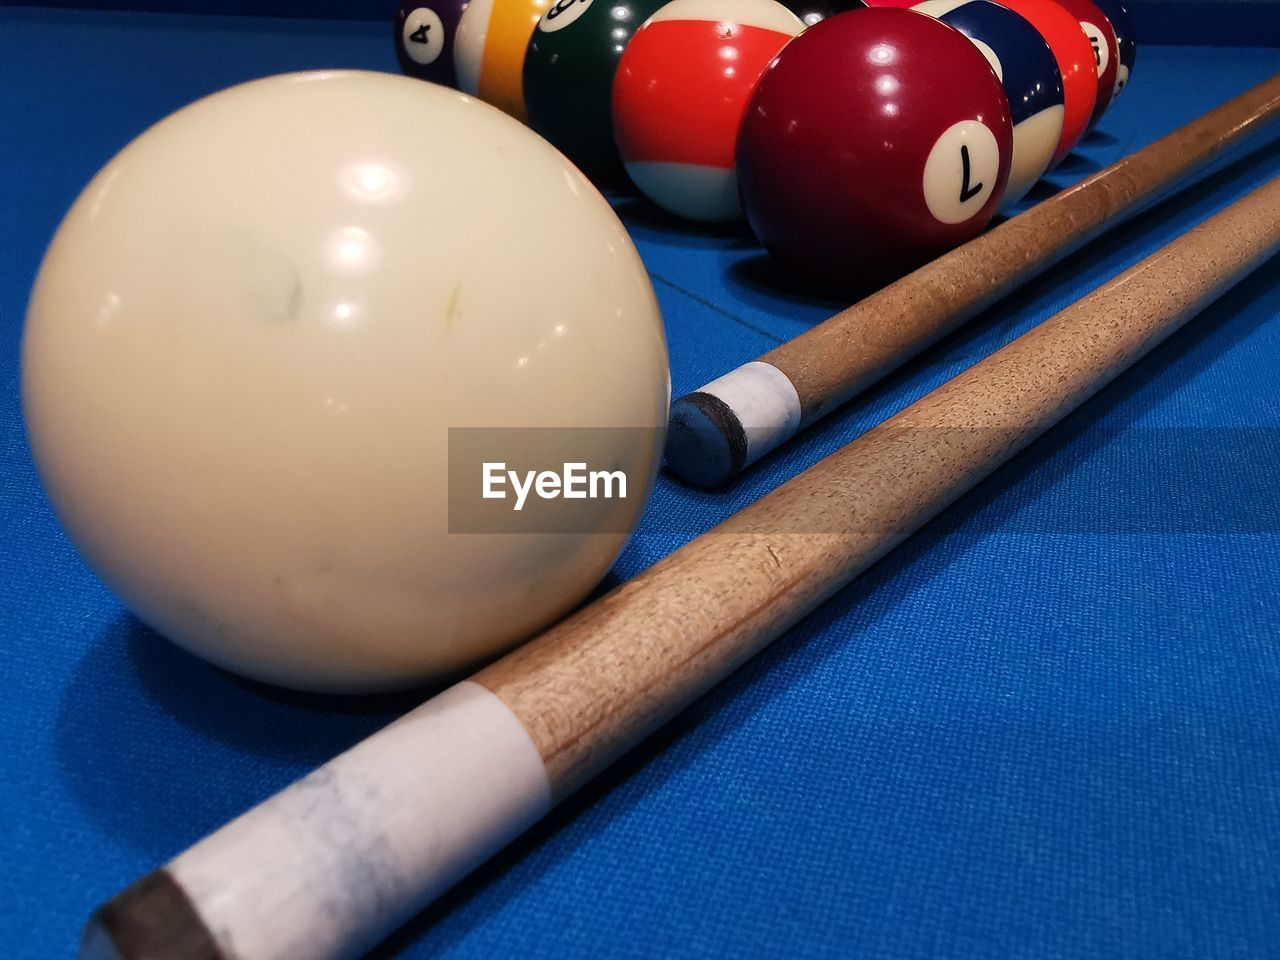 sport, ball, table, pool ball, still life, sphere, blue, pool table, pool cue, pool - cue sport, indoors, no people, close-up, sports equipment, snooker, high angle view, leisure games, cue ball, relaxation, arts culture and entertainment